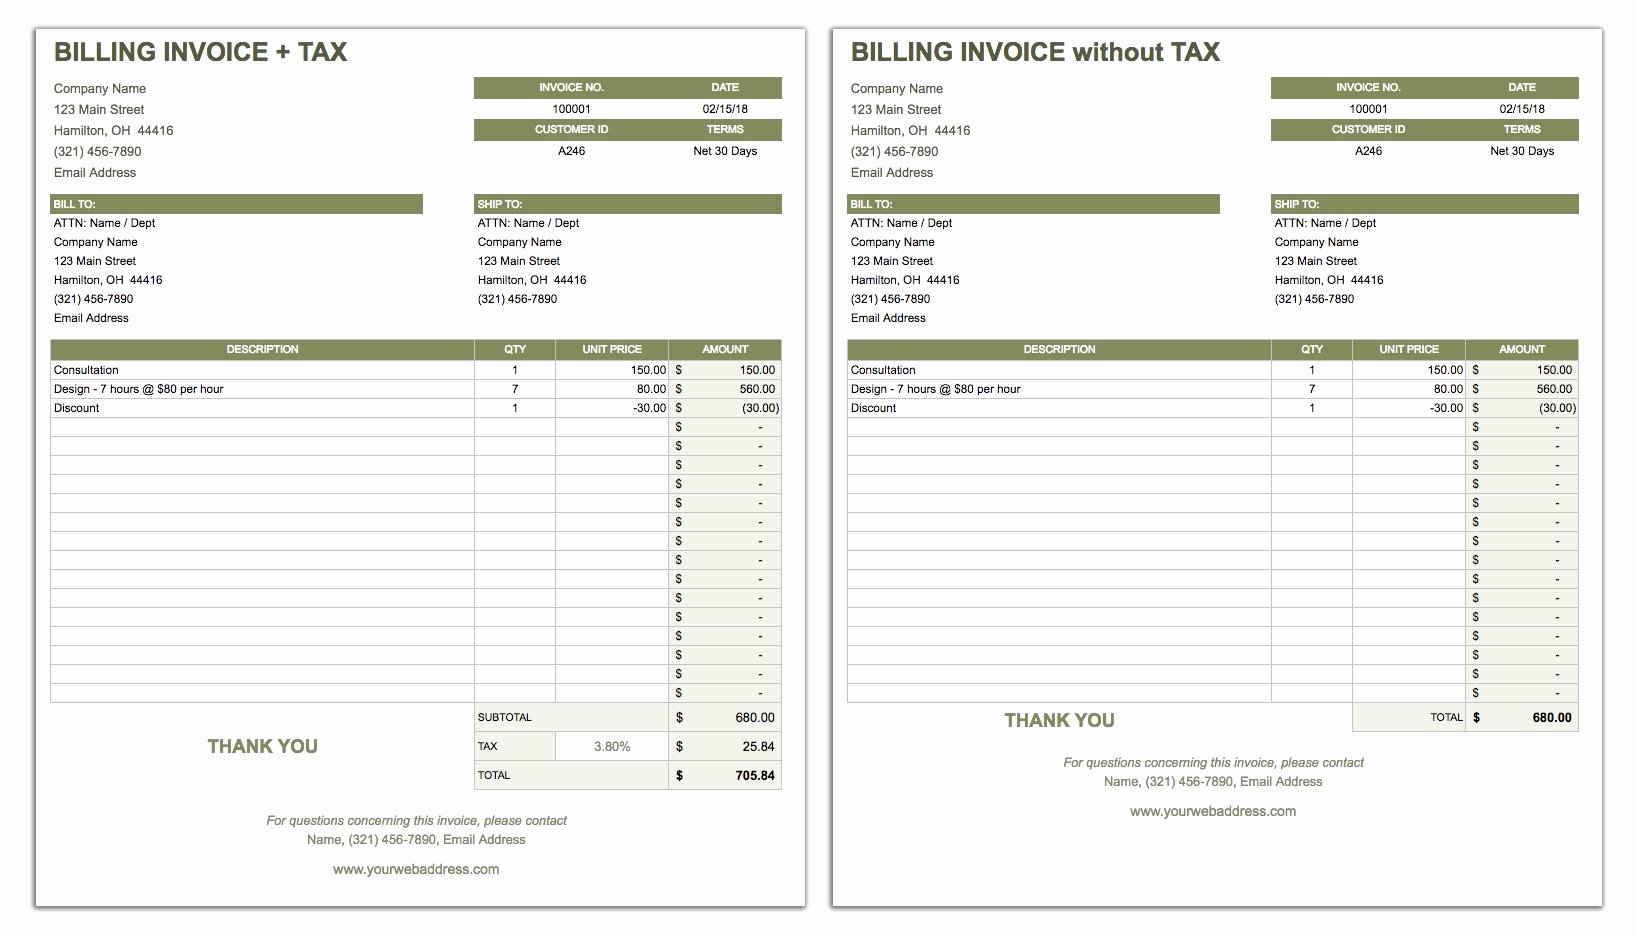 Free Billing Invoice Template Lovely 55 Free Invoice Templates